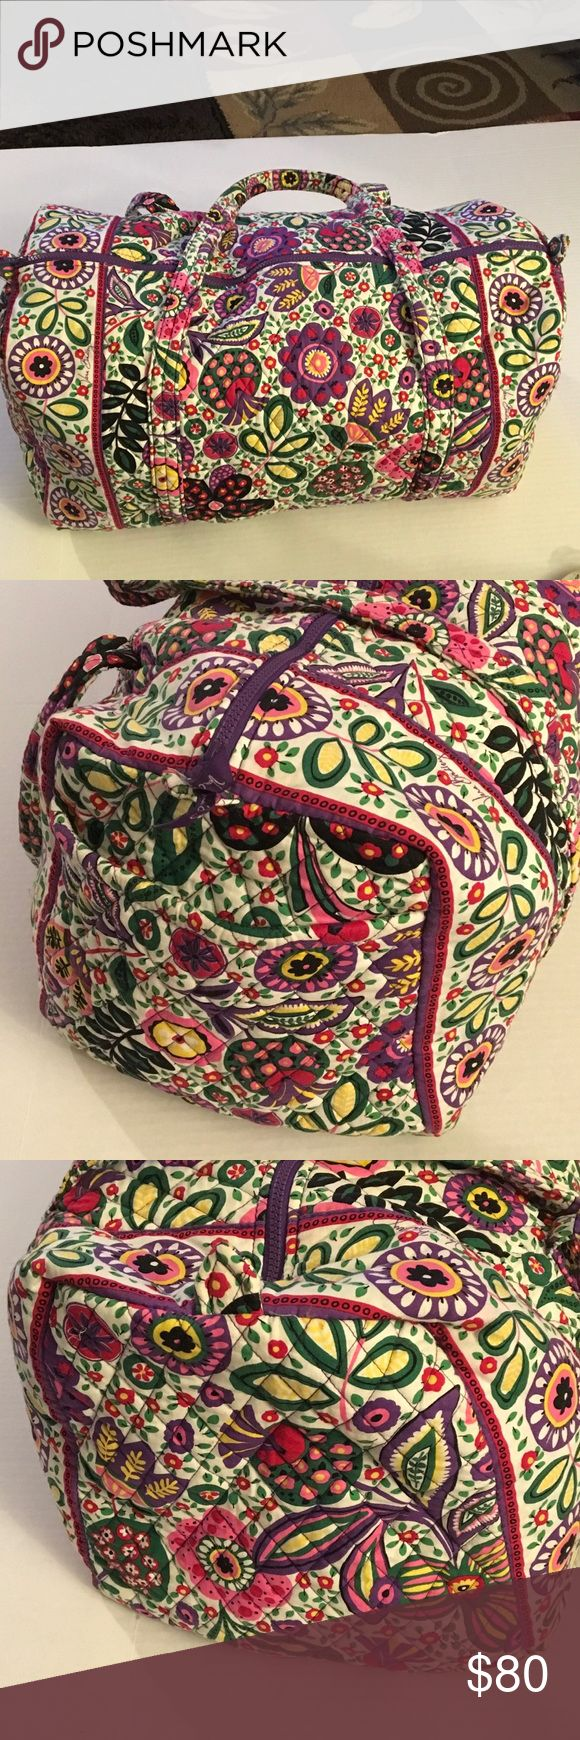 "Vera Bradley duffel bag Like new Vera Bradley floral duffel bag.  Two top handles.  Top zipper.  Purple trim.  Interior is also floral.  Like new.  Not dirty.  Clean inside and out.  Approx size 23"" wide and stands about 15.  11"" deep.  Handles drop about 17"". Vera Bradley Bags Travel Bags"